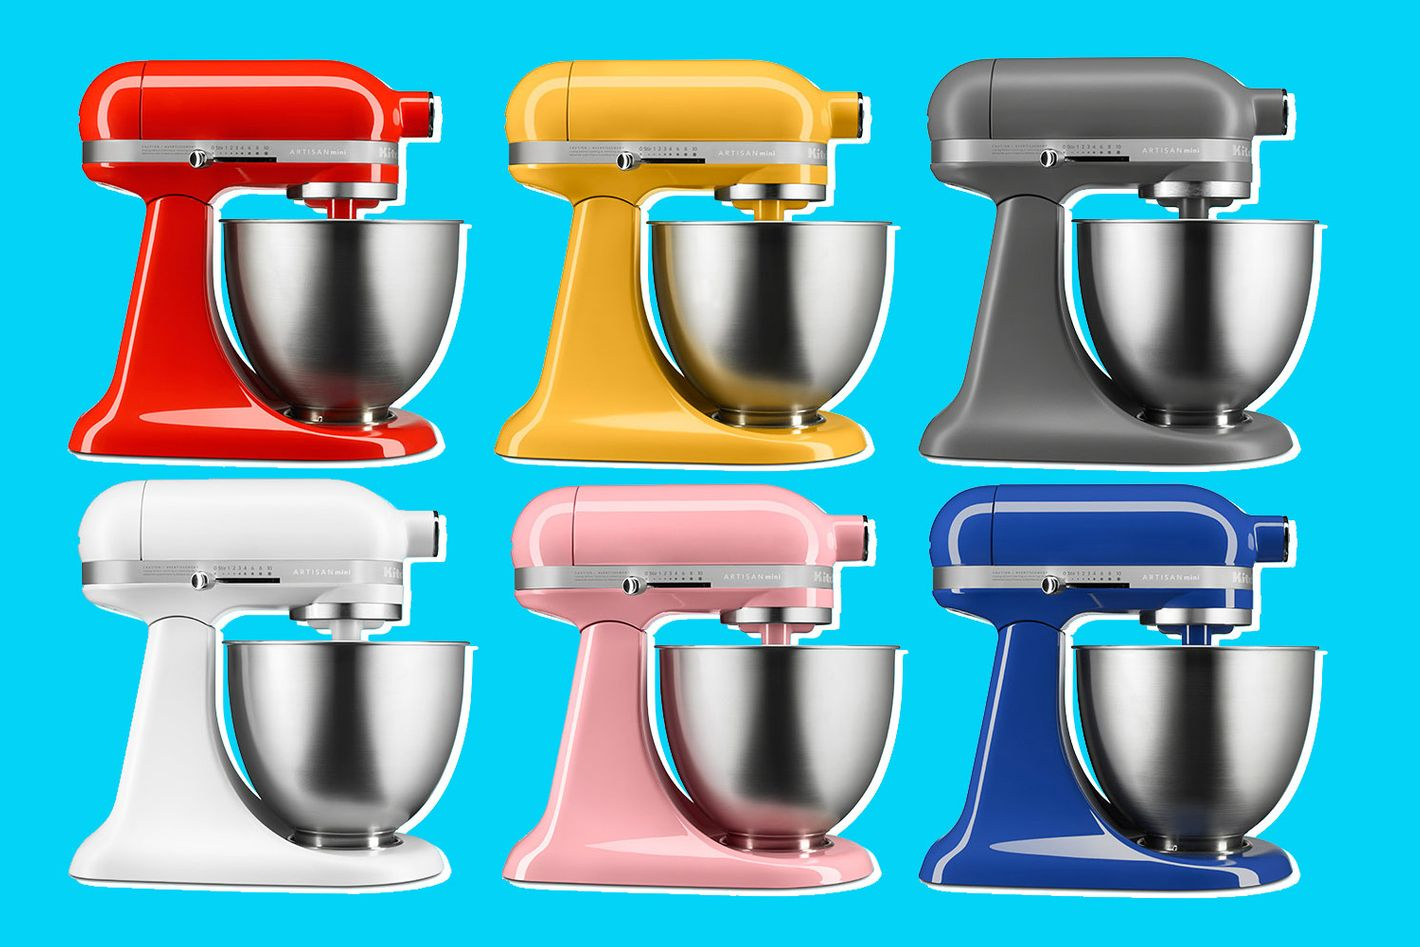 Kitchenaids Artisan Mini Is The Best Mixer For Millennials Kitchenaid